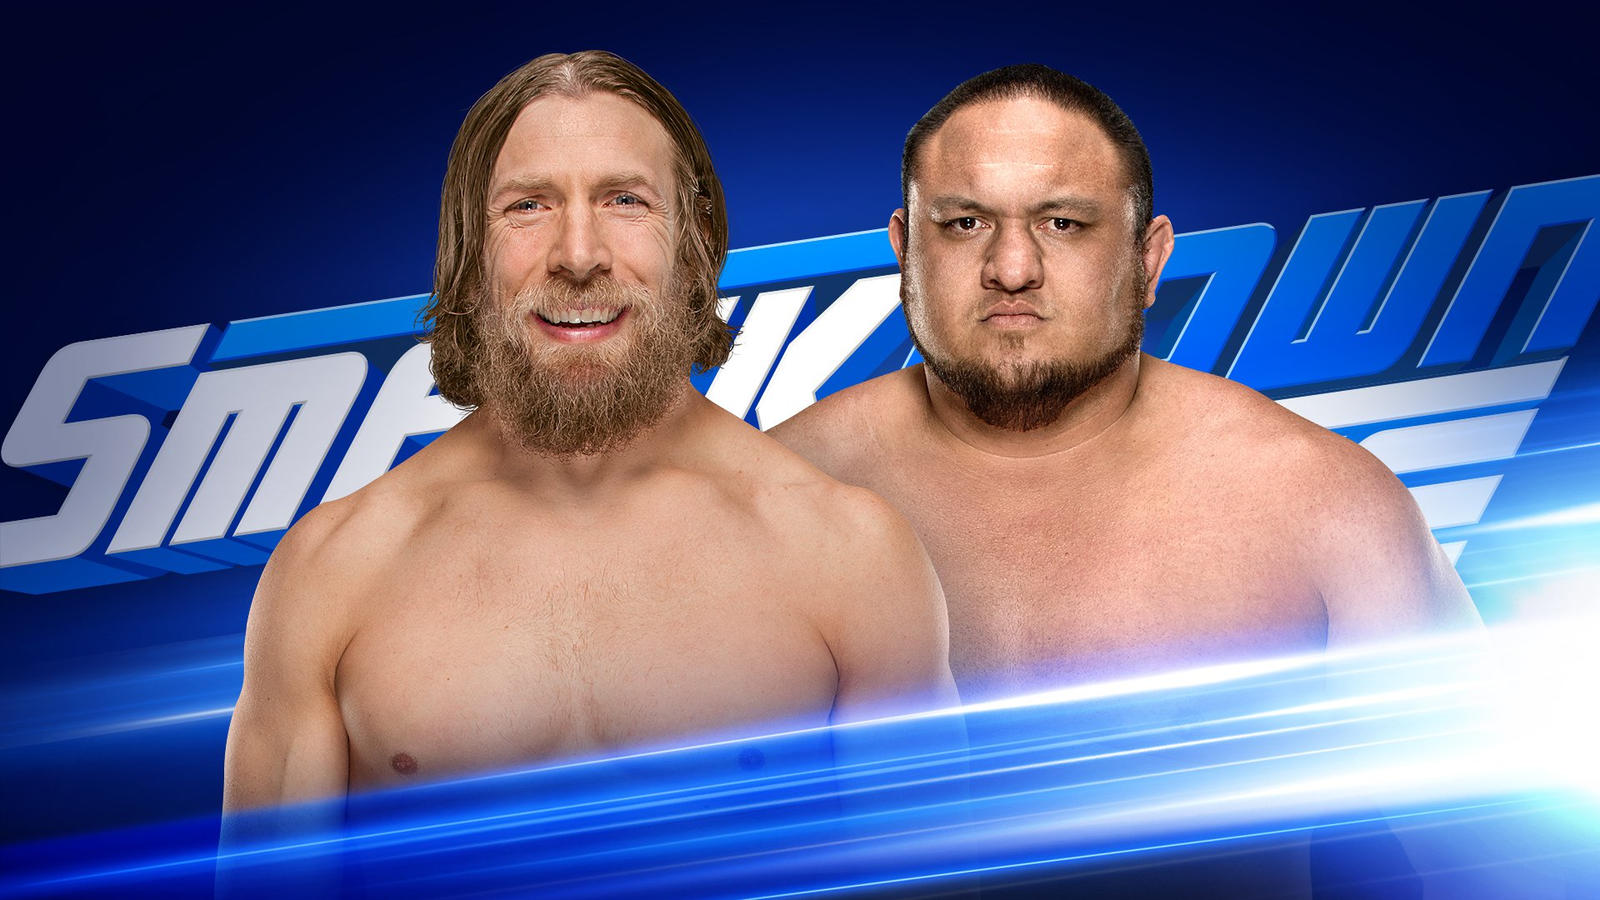 SmackDown brings an amazing match free on TV!